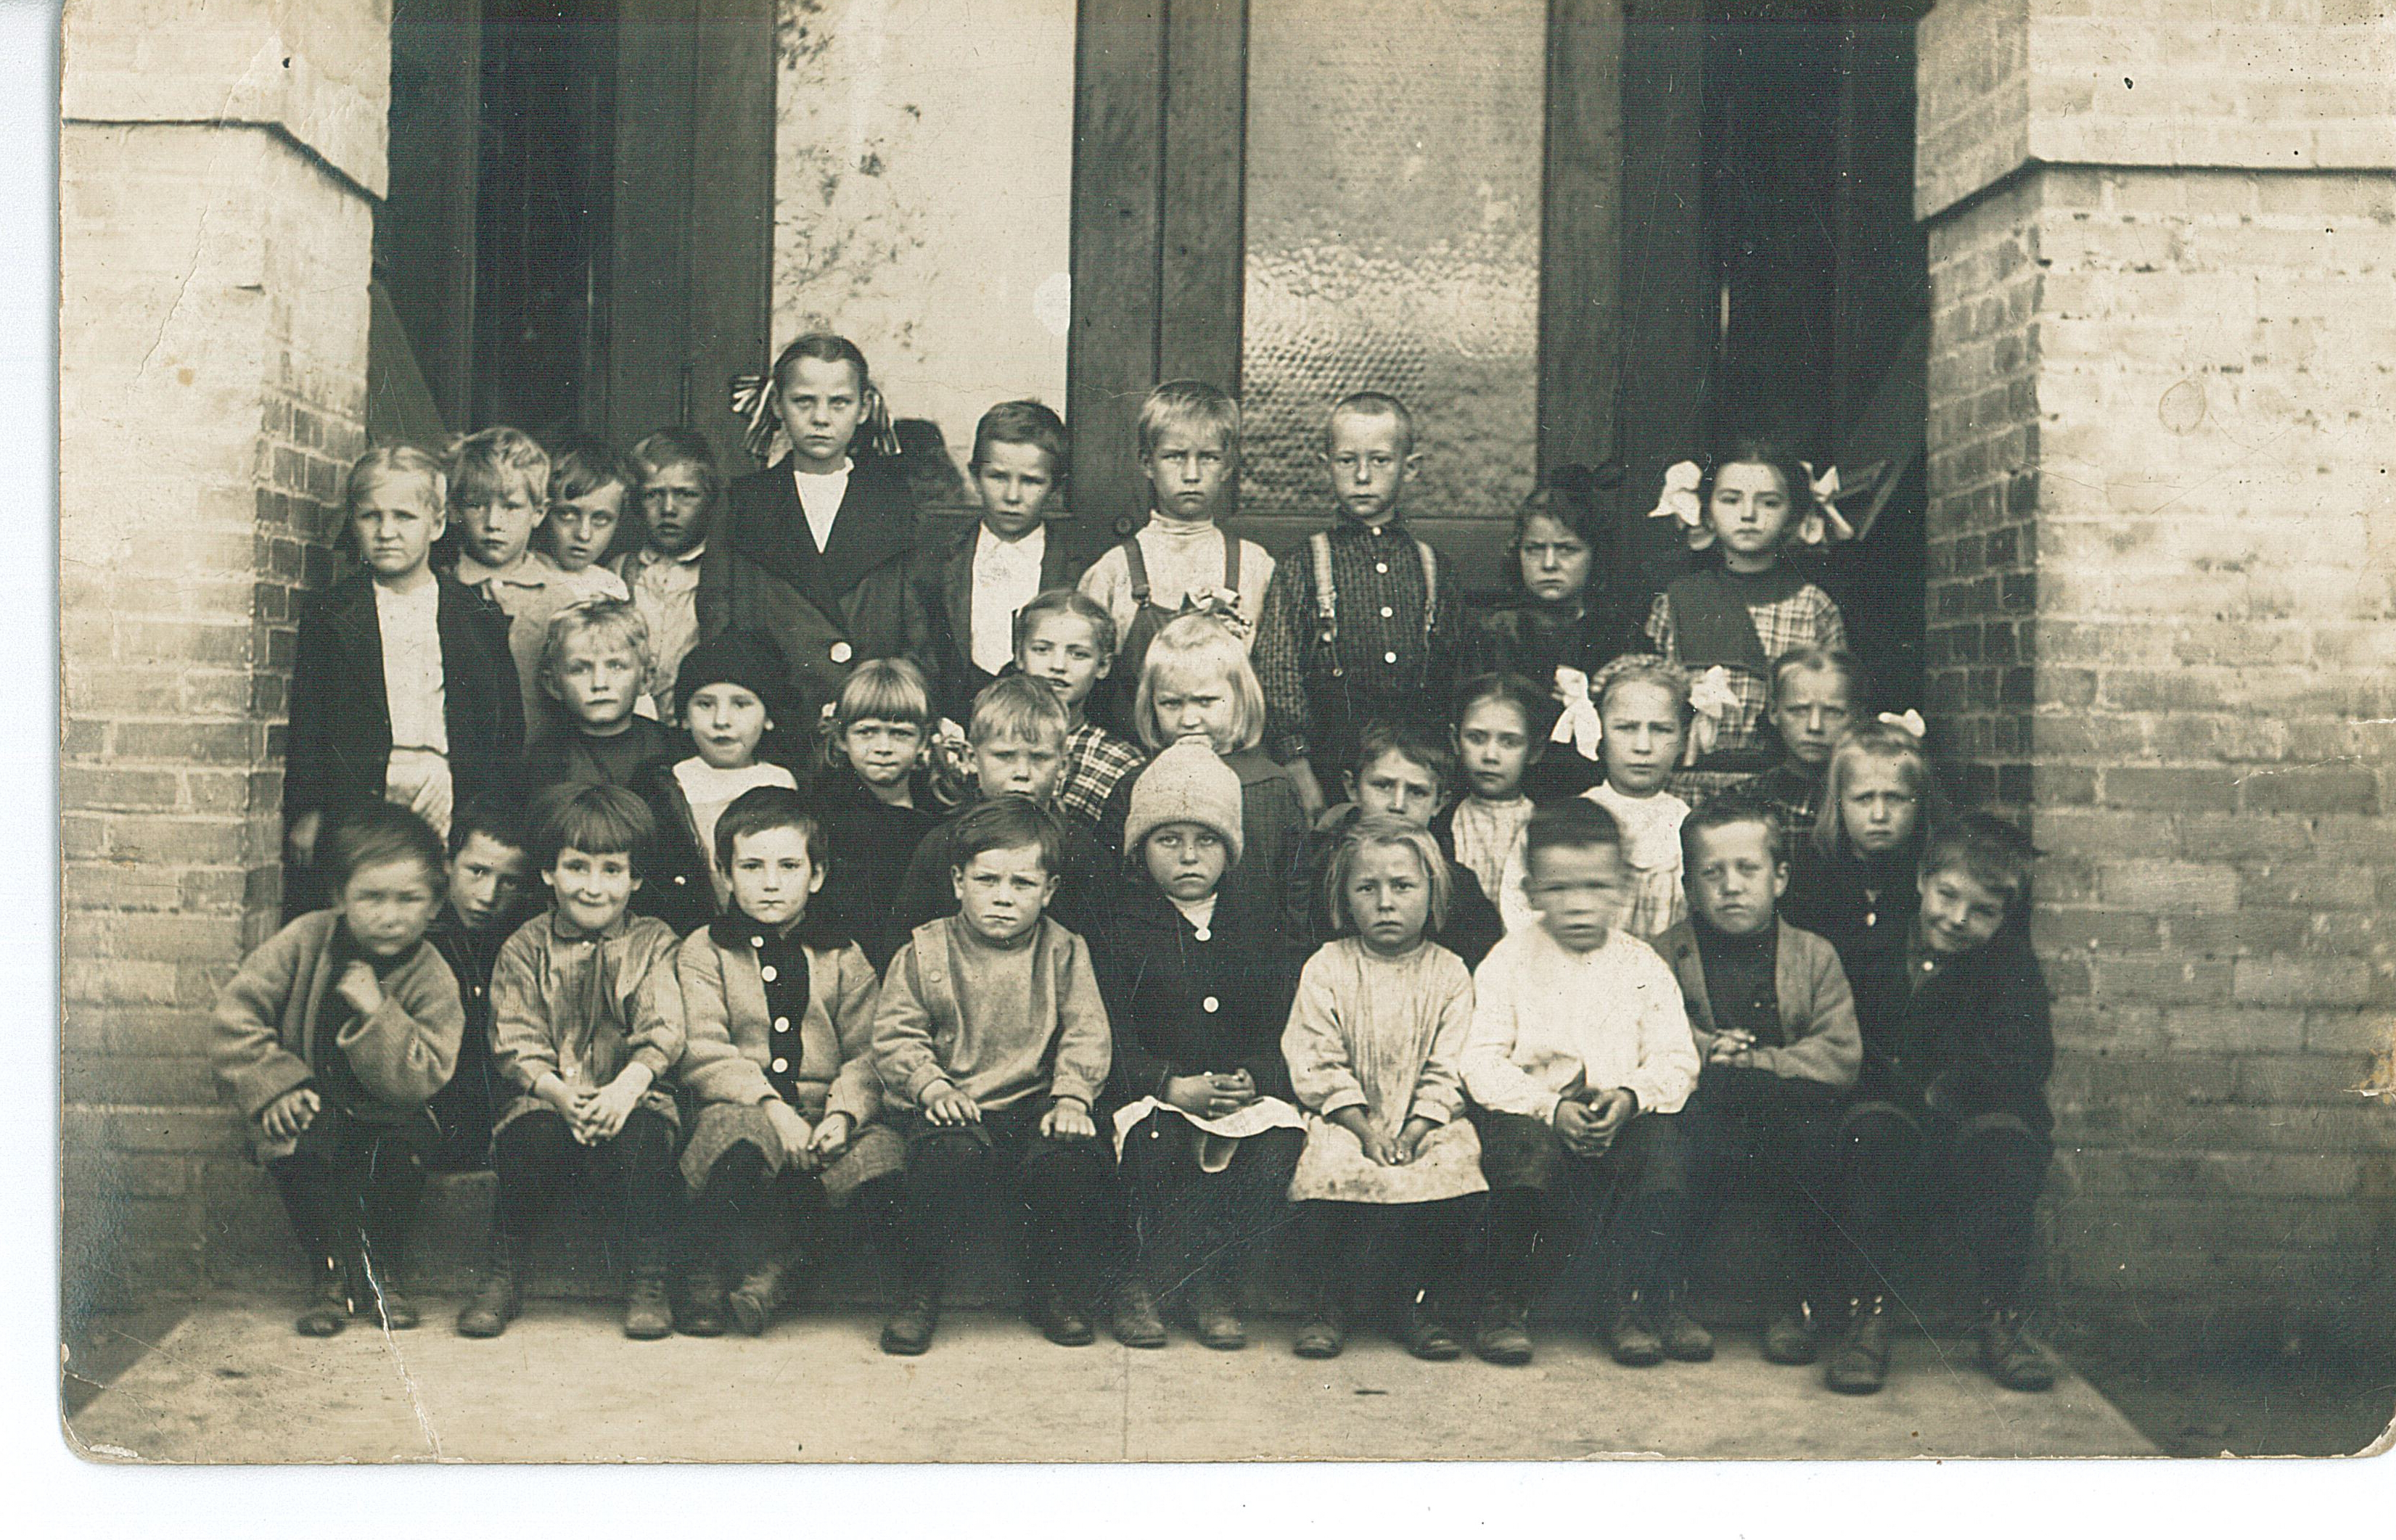 Second grad class photo, Lincoln Elementary School, Little Falls, MN, 1914. MCHS Collections #2017.74.1.